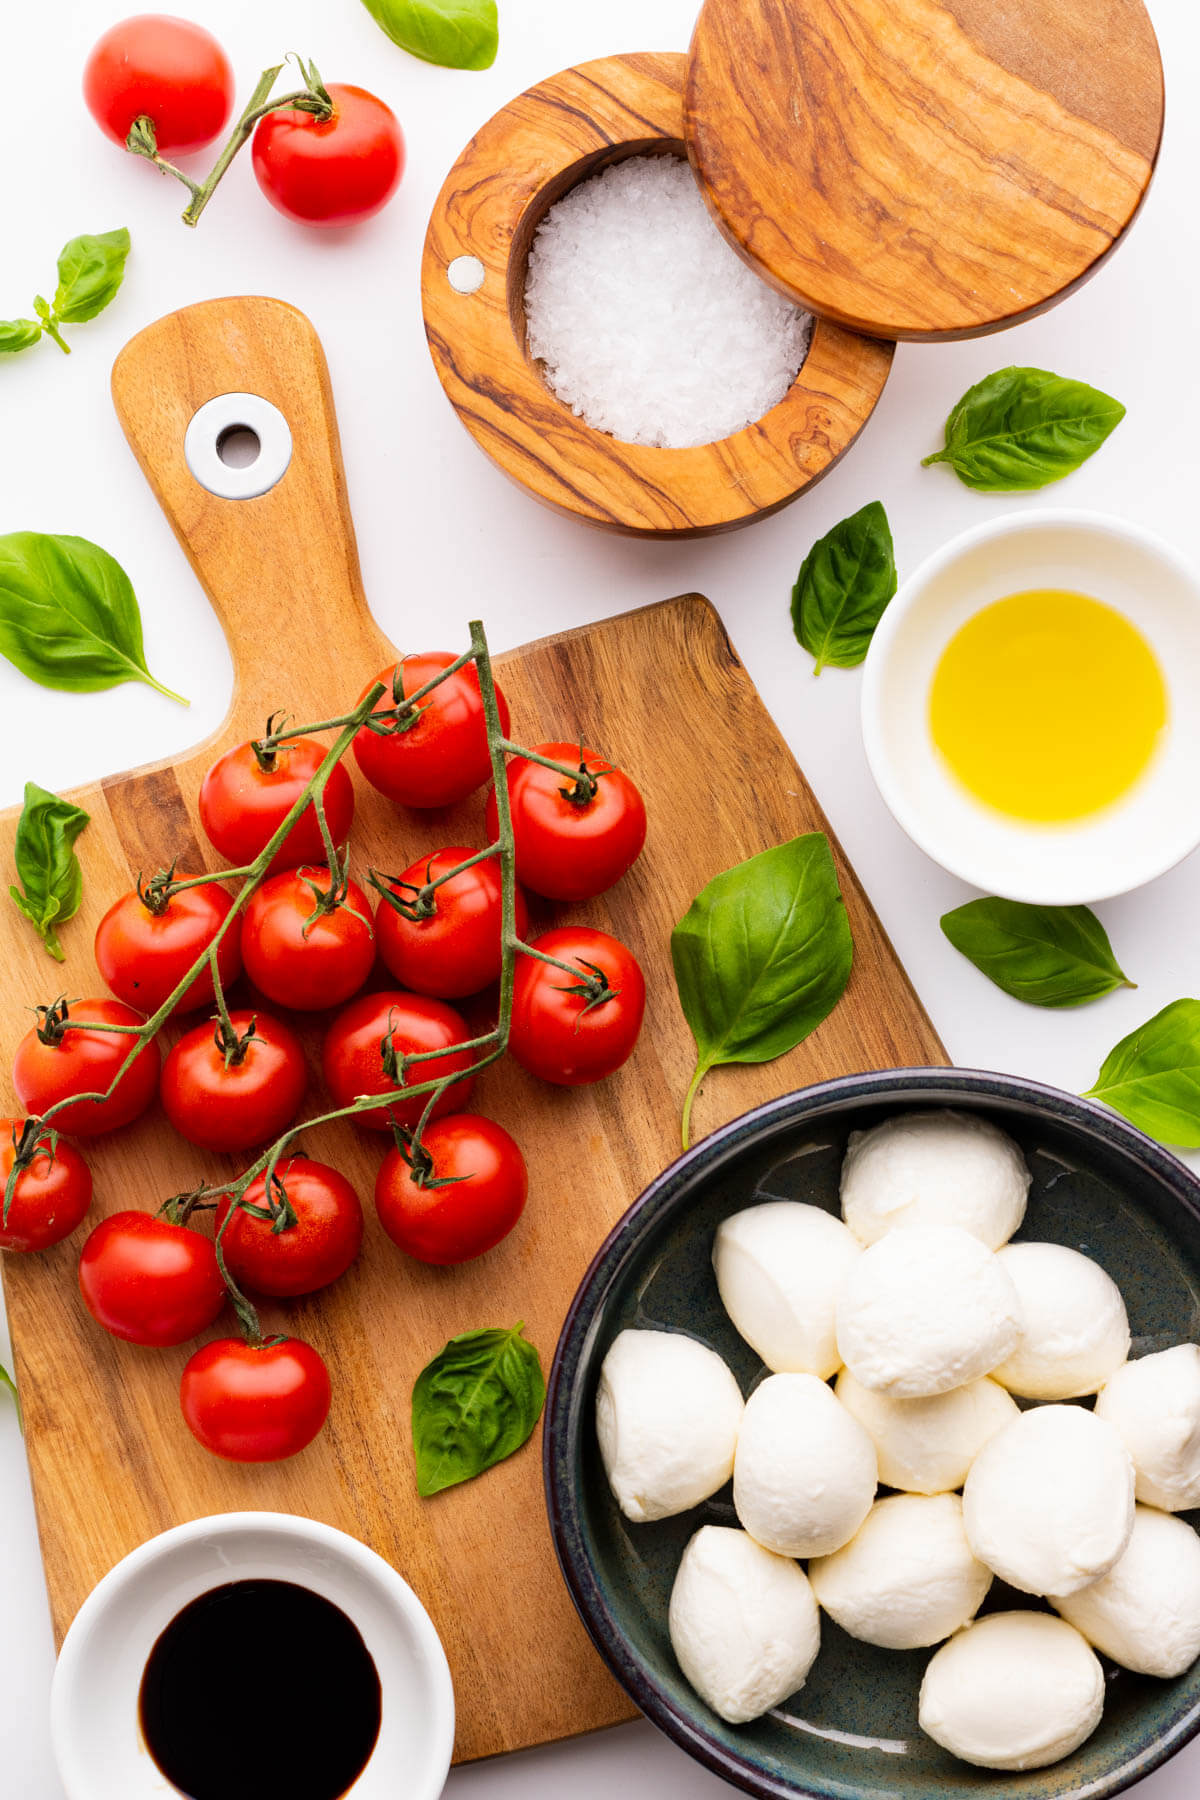 Ingredients needed for a Cherry tomato caprese salad on a wooden cutting board.